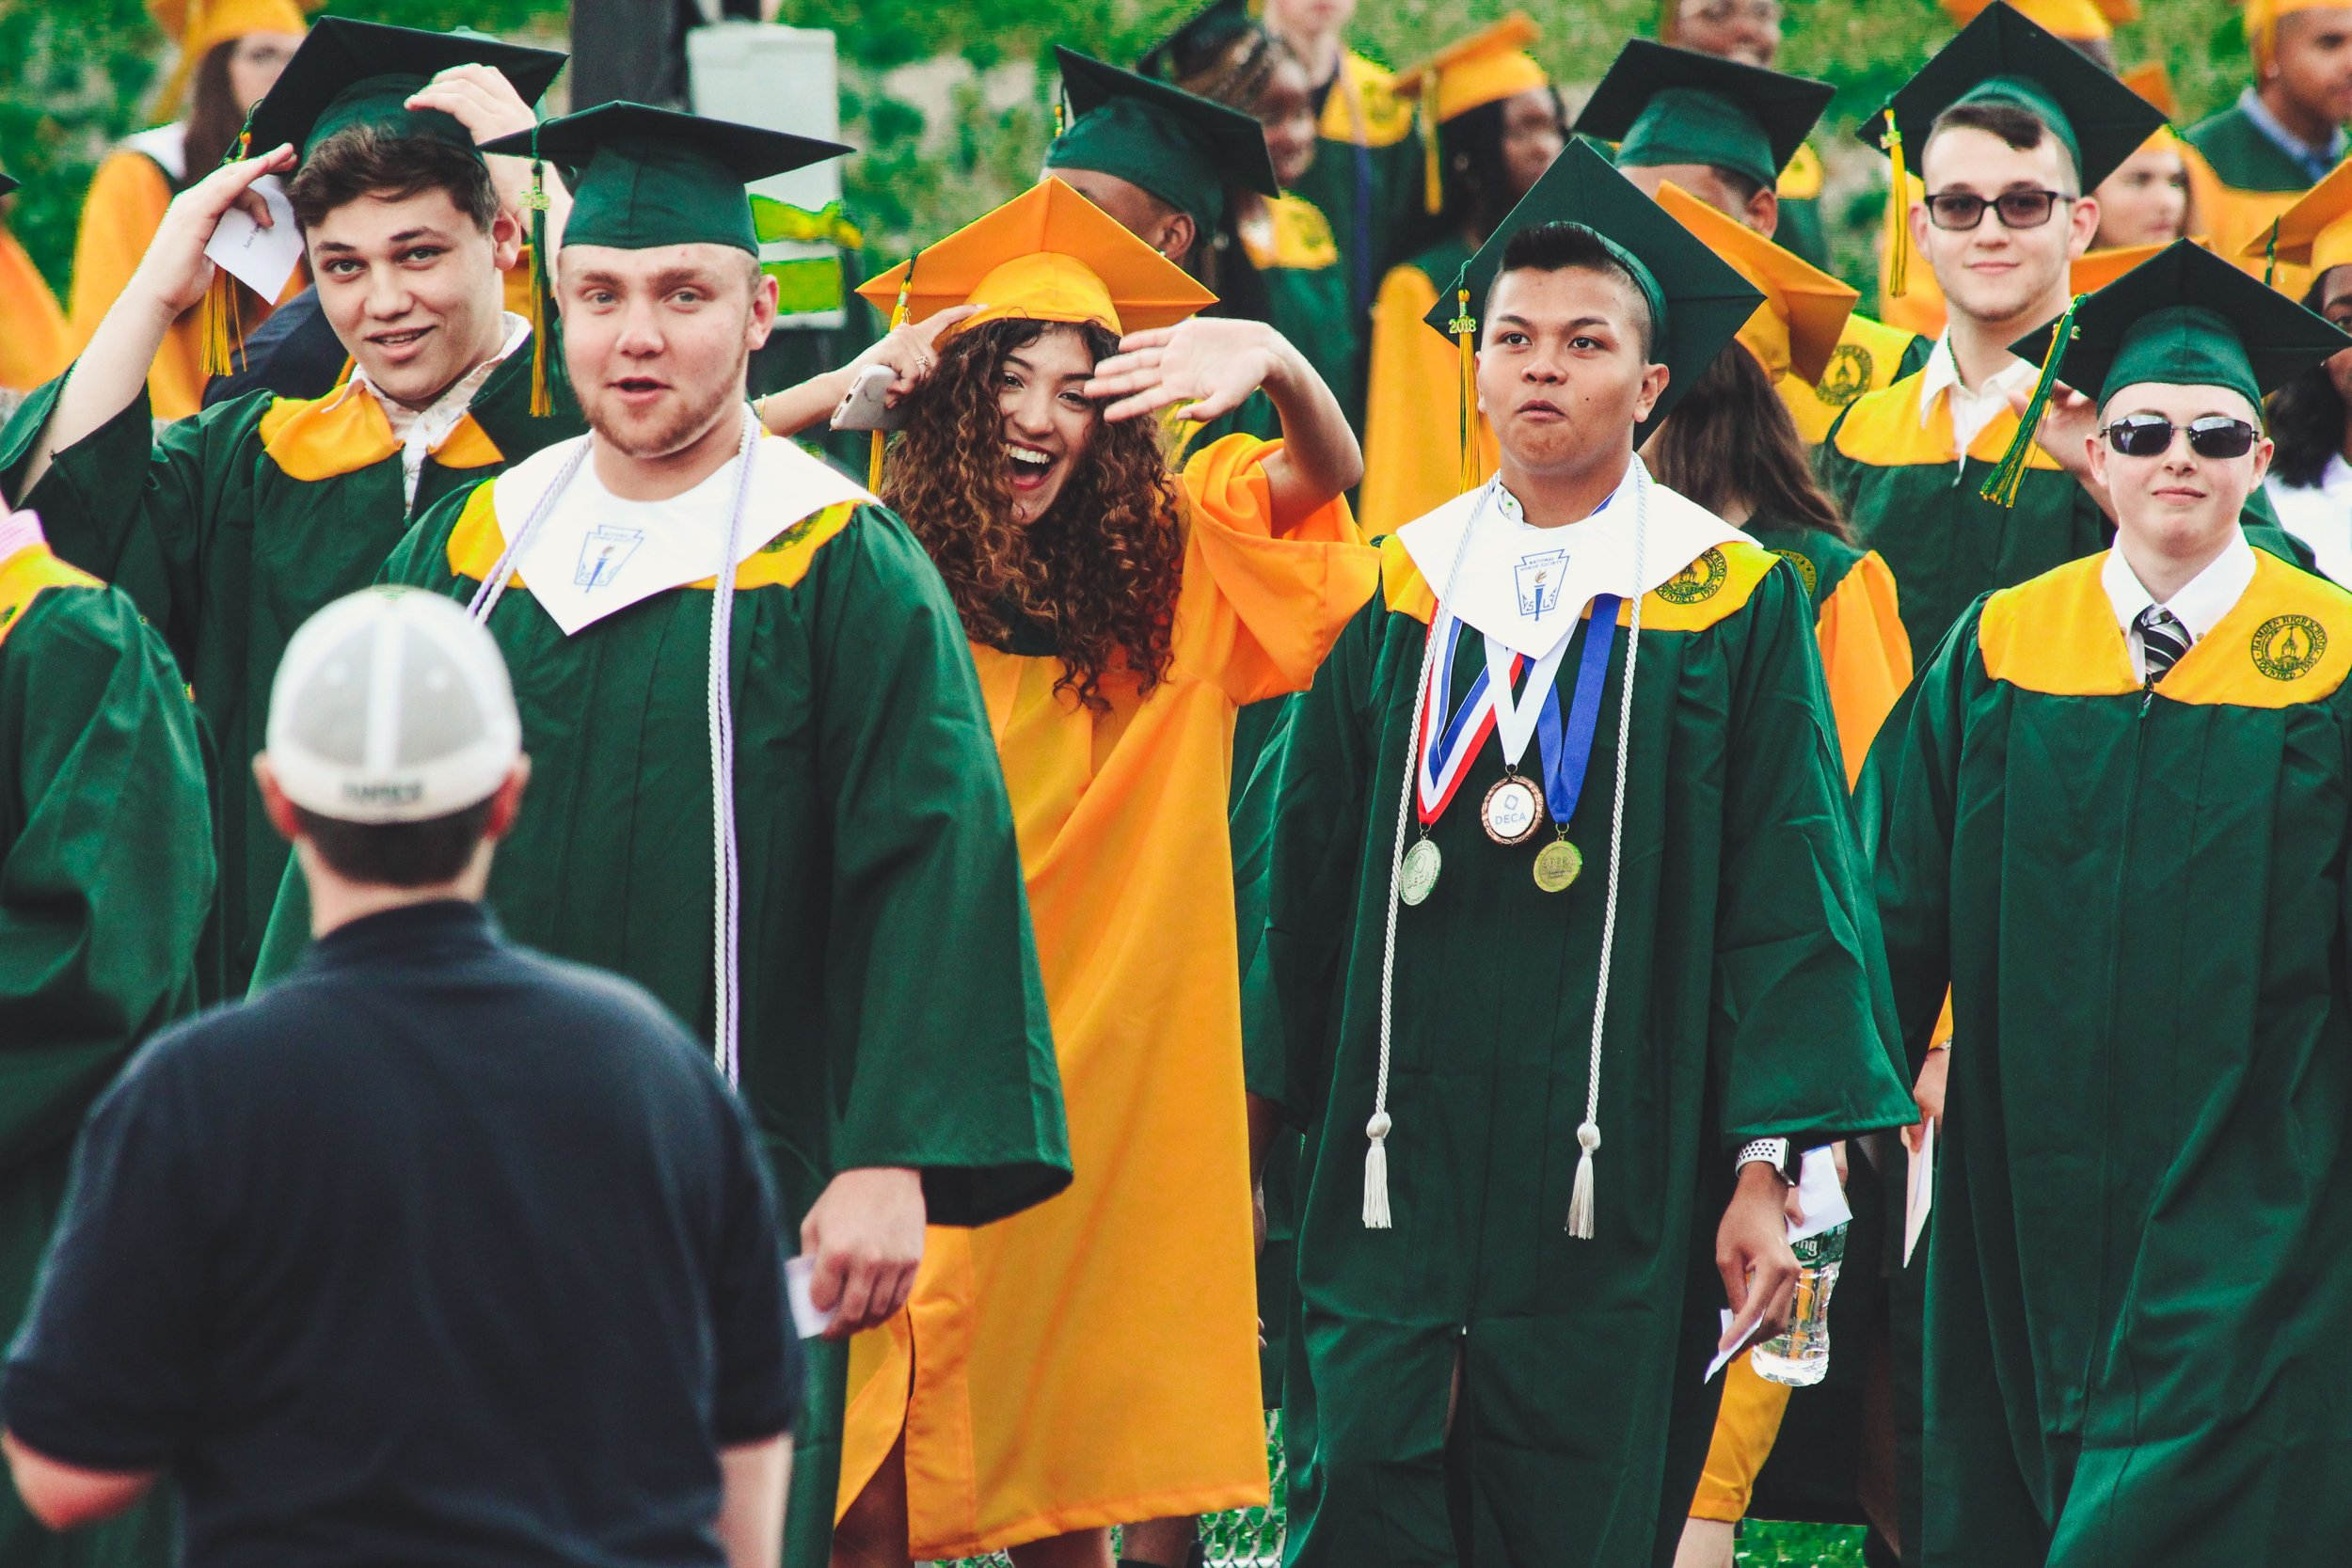 Graduation students walking in cap gown.jpg